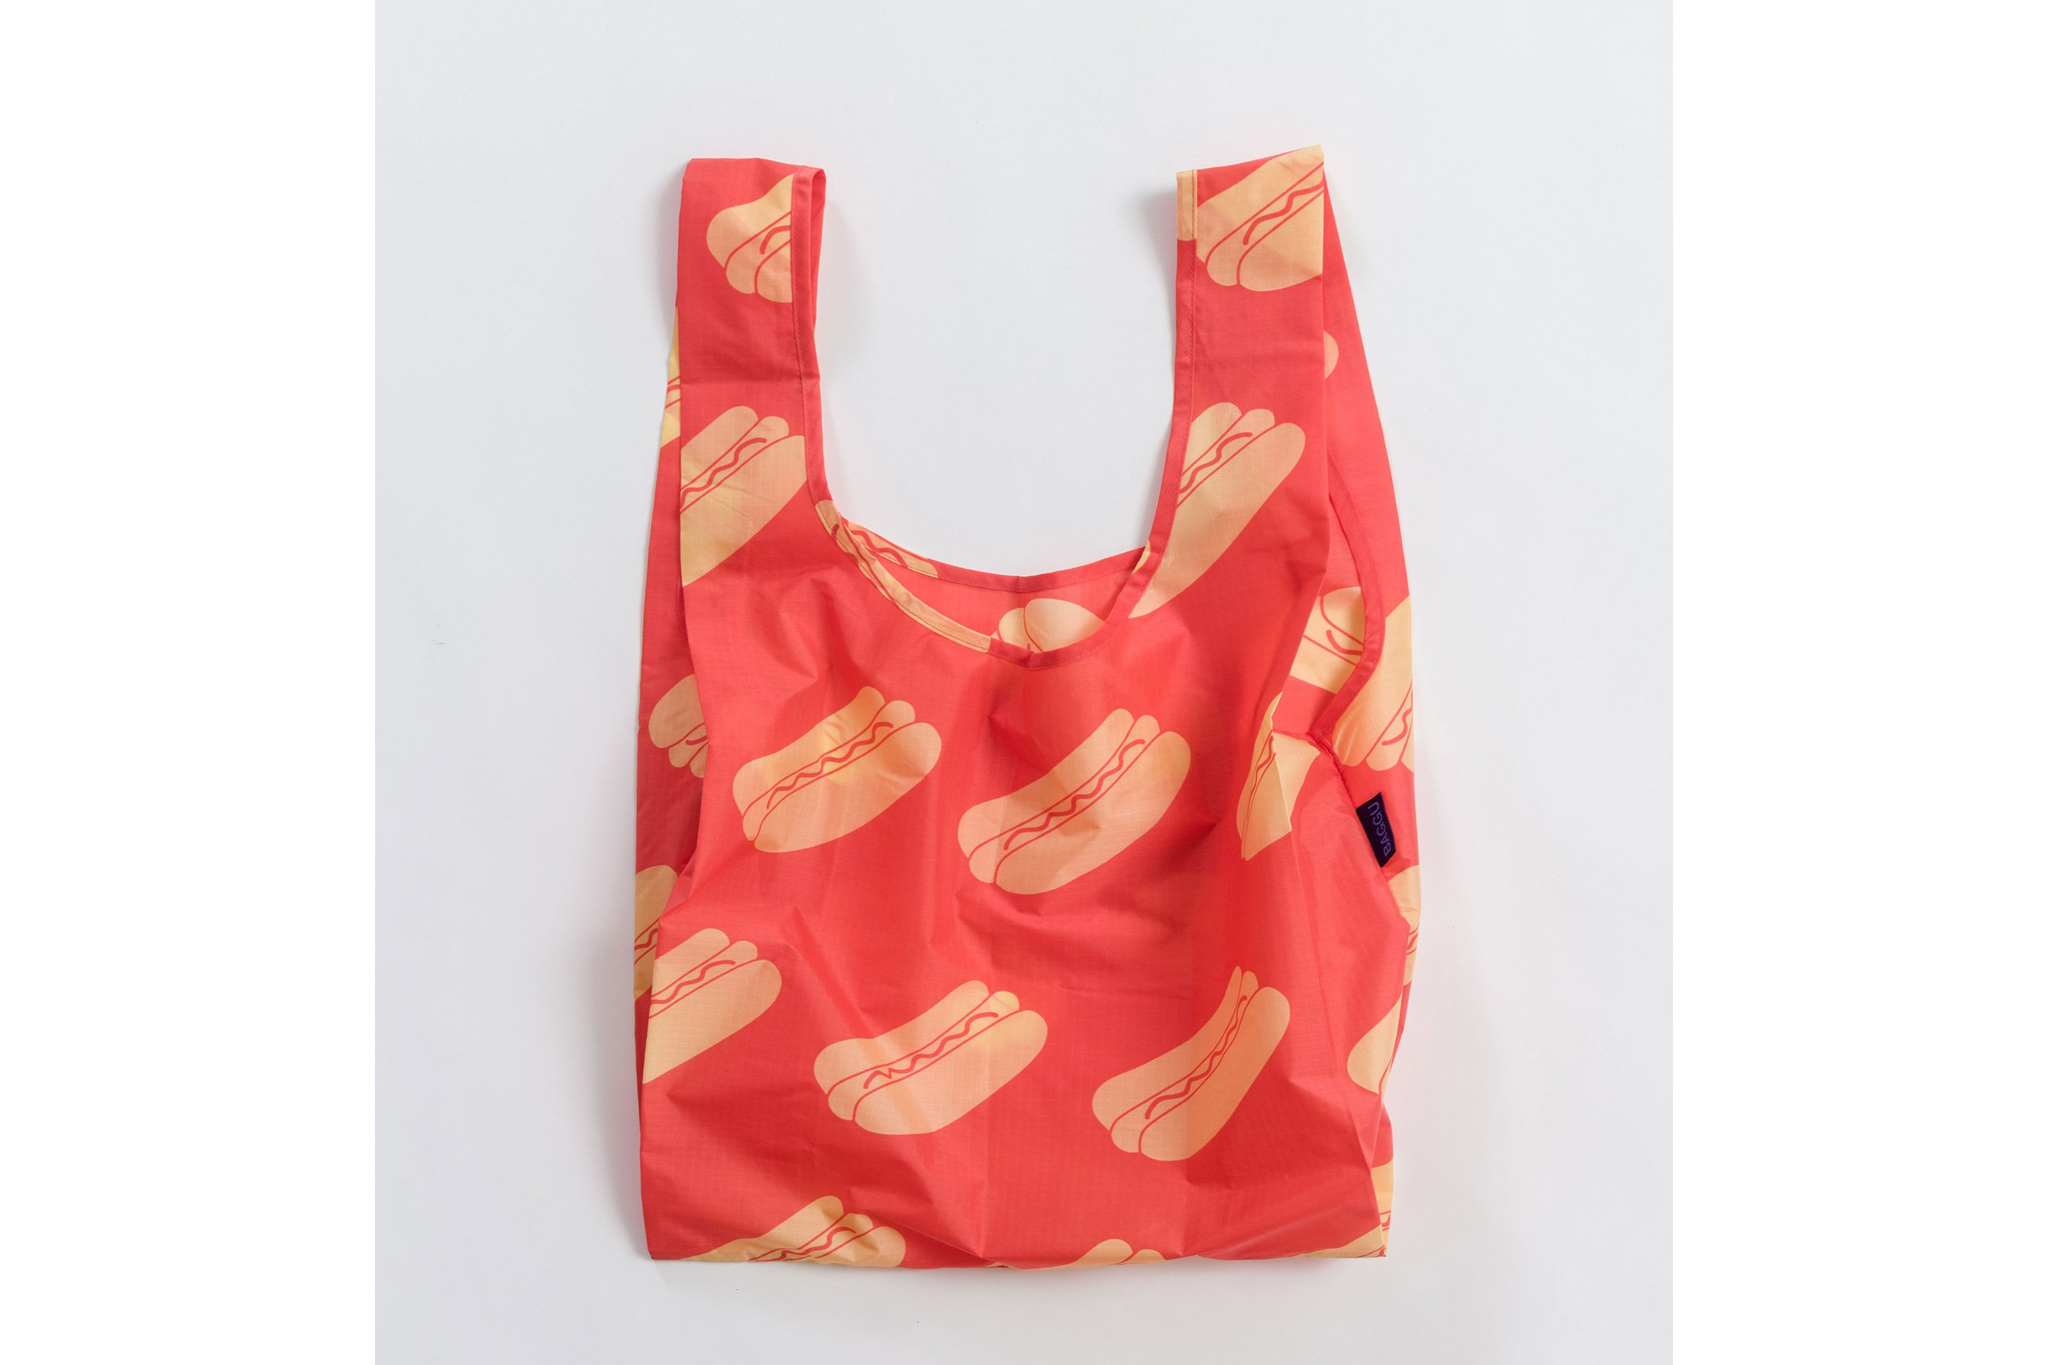 Sturdy reusable bags